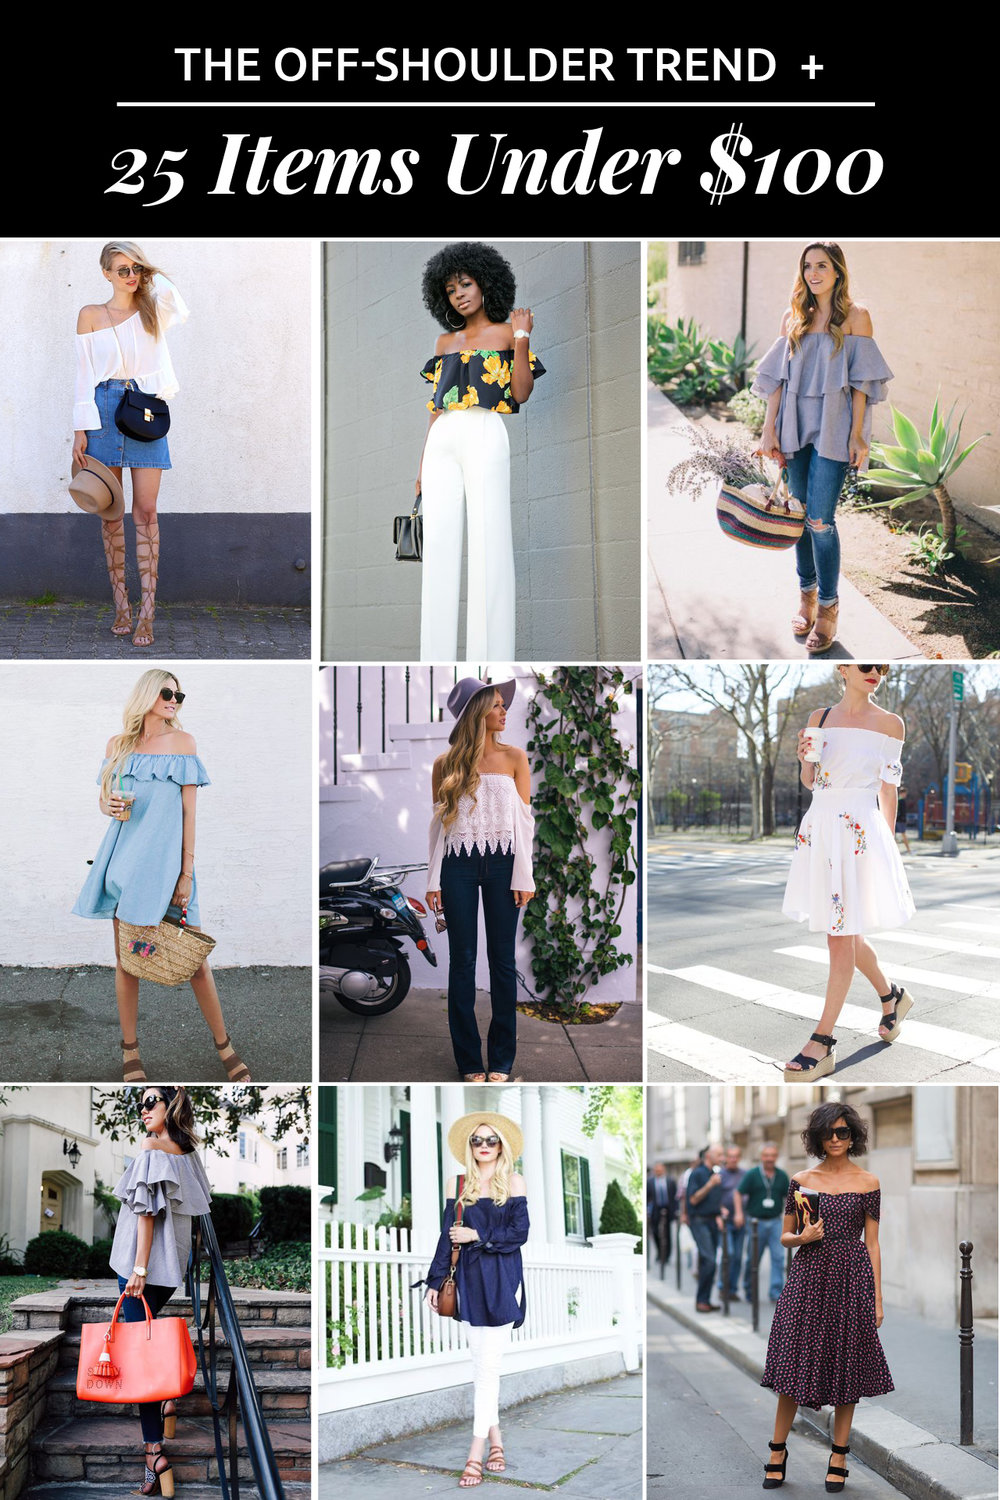 The Off Shoulder Trend + 25 Items Under $100